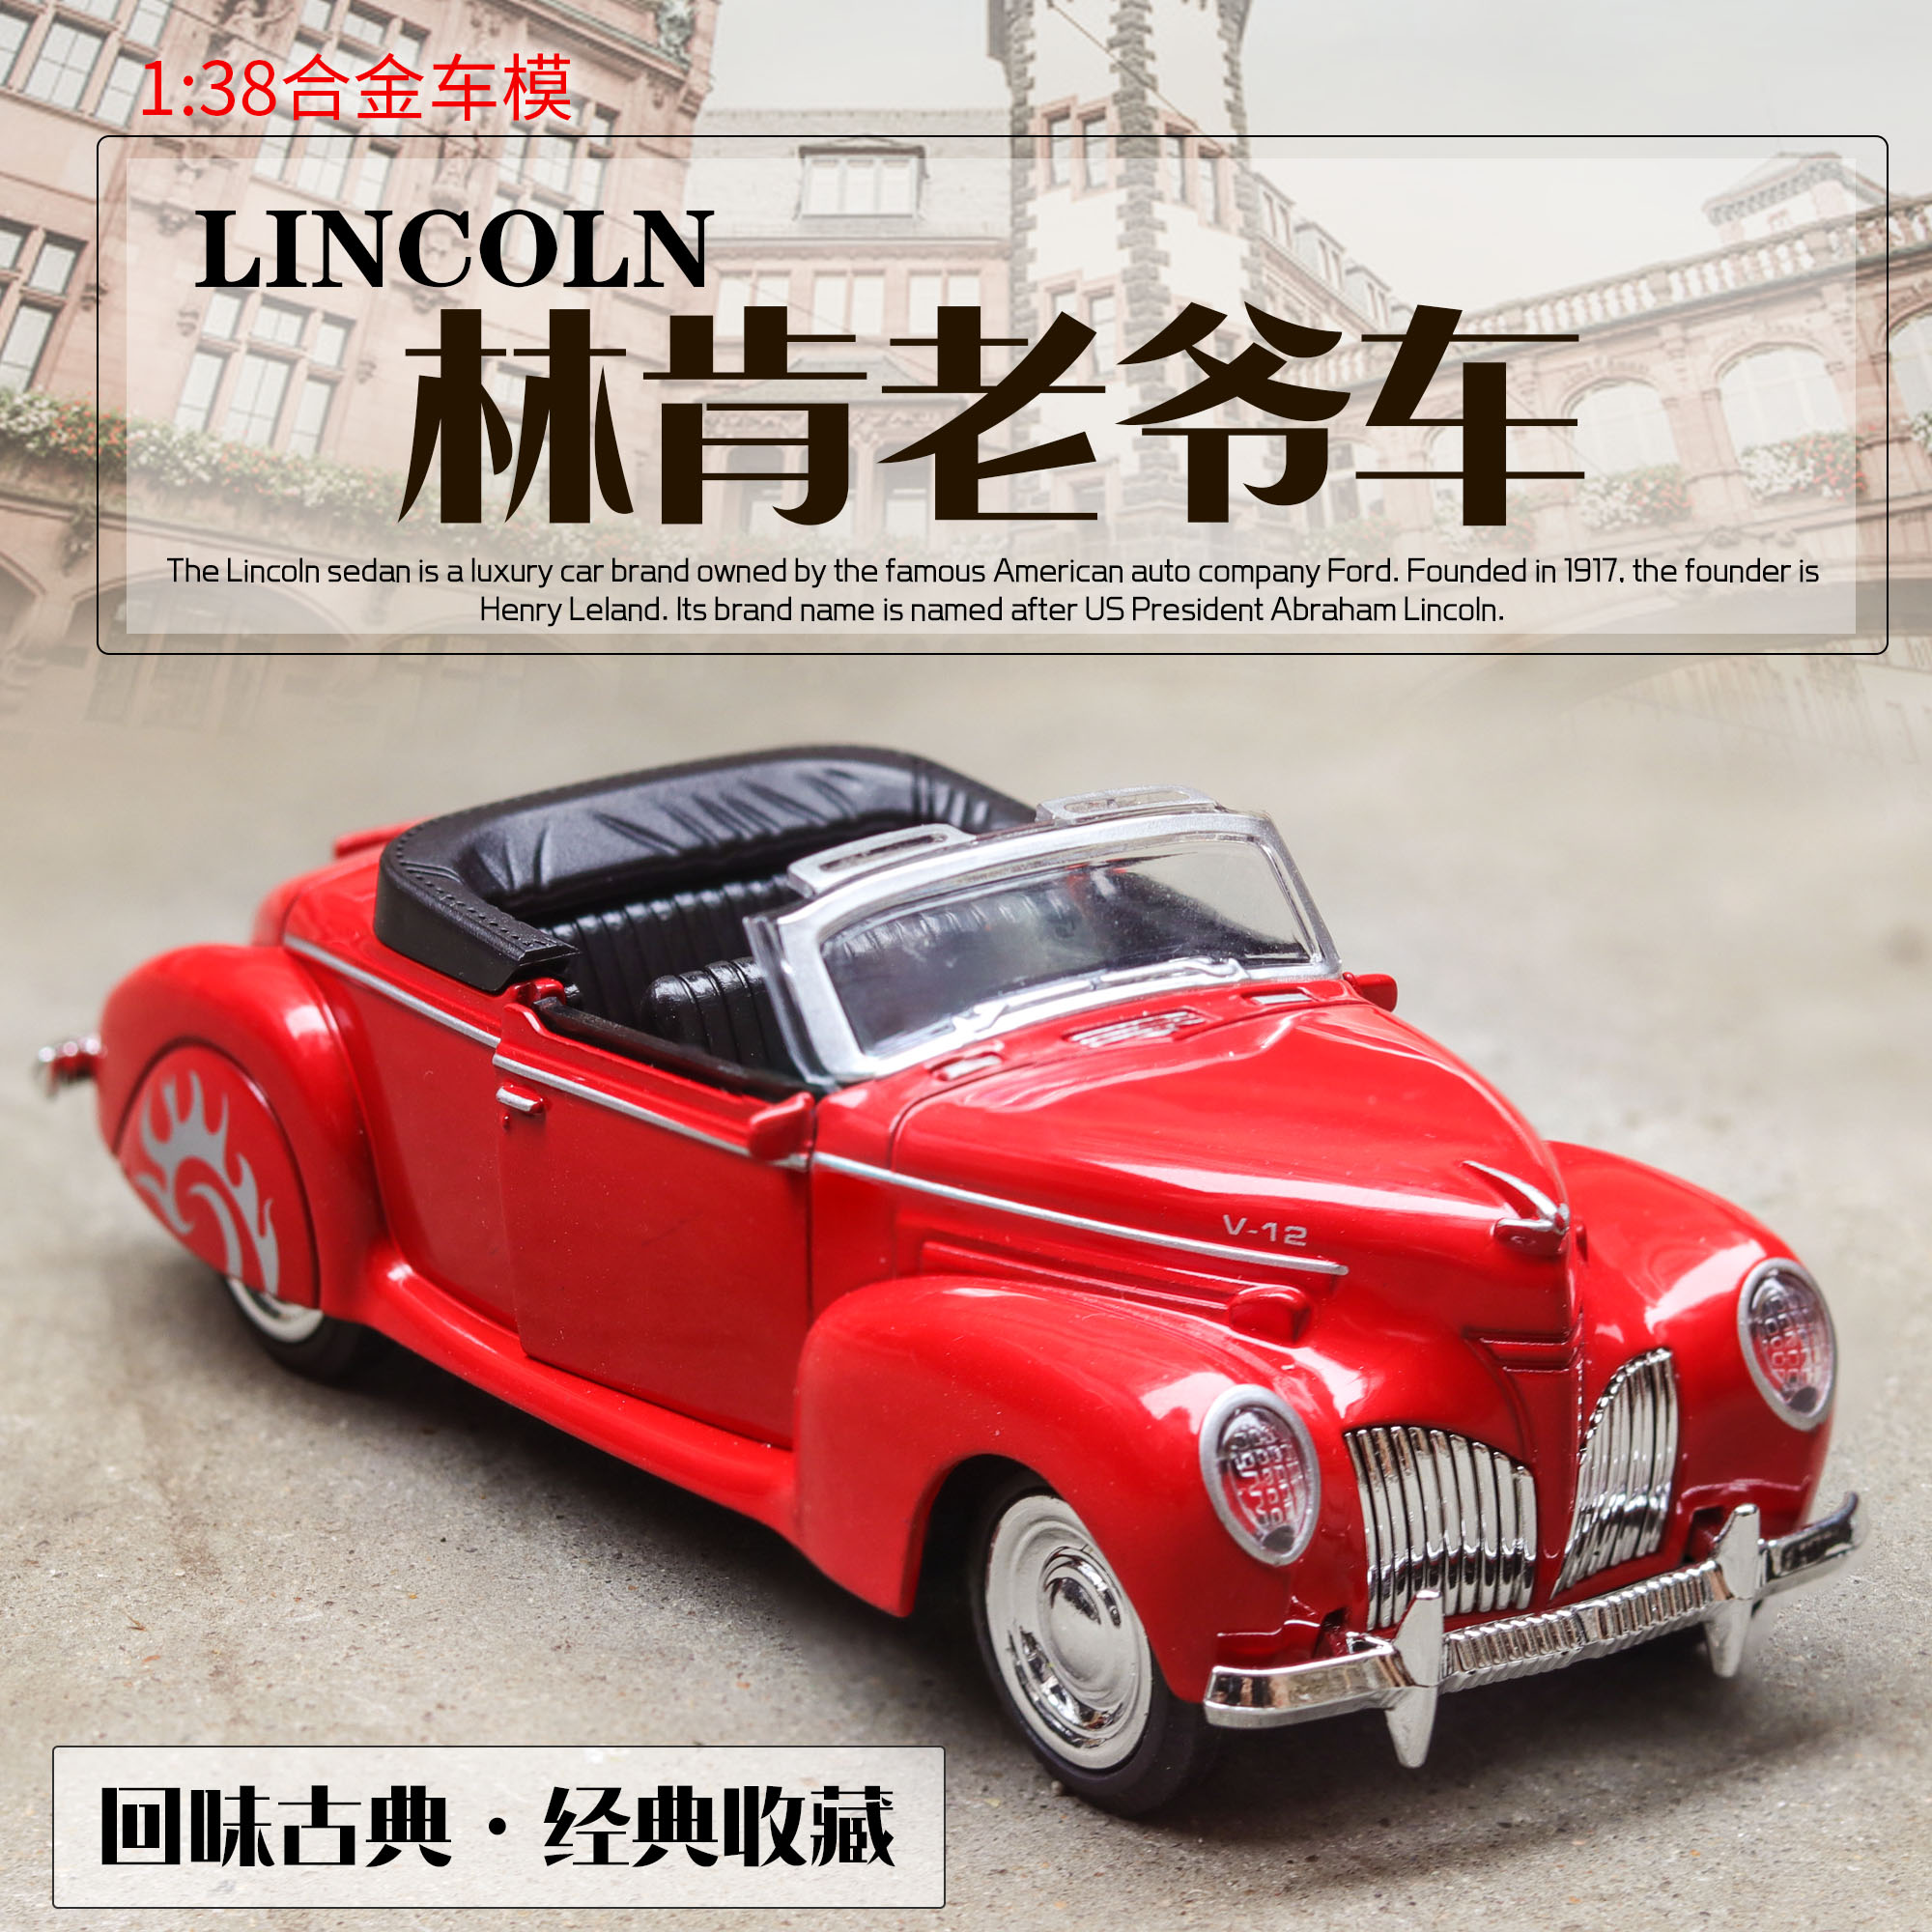 1:38 Toy Car Lincoln Old Car  Metal Toy Alloy Car Diecasts & Toy Vehicles Car Model Miniature Scale Model Car Toys For Children